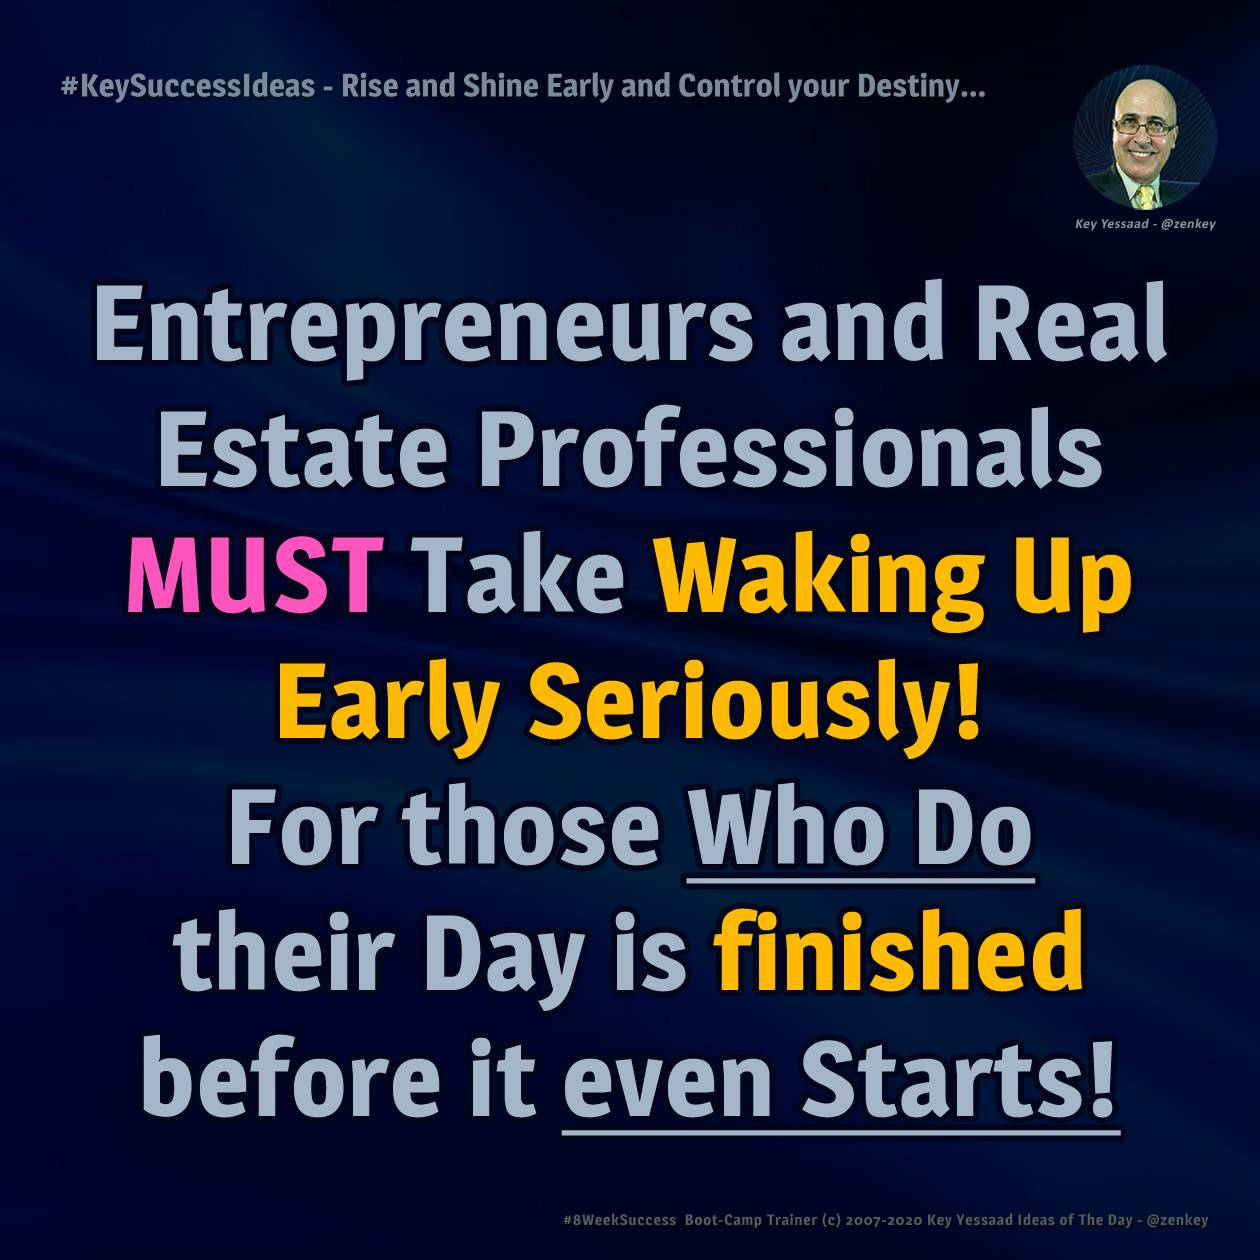 Rise and Shine Early and Control your Destiny... - #KeySuccessIdeas